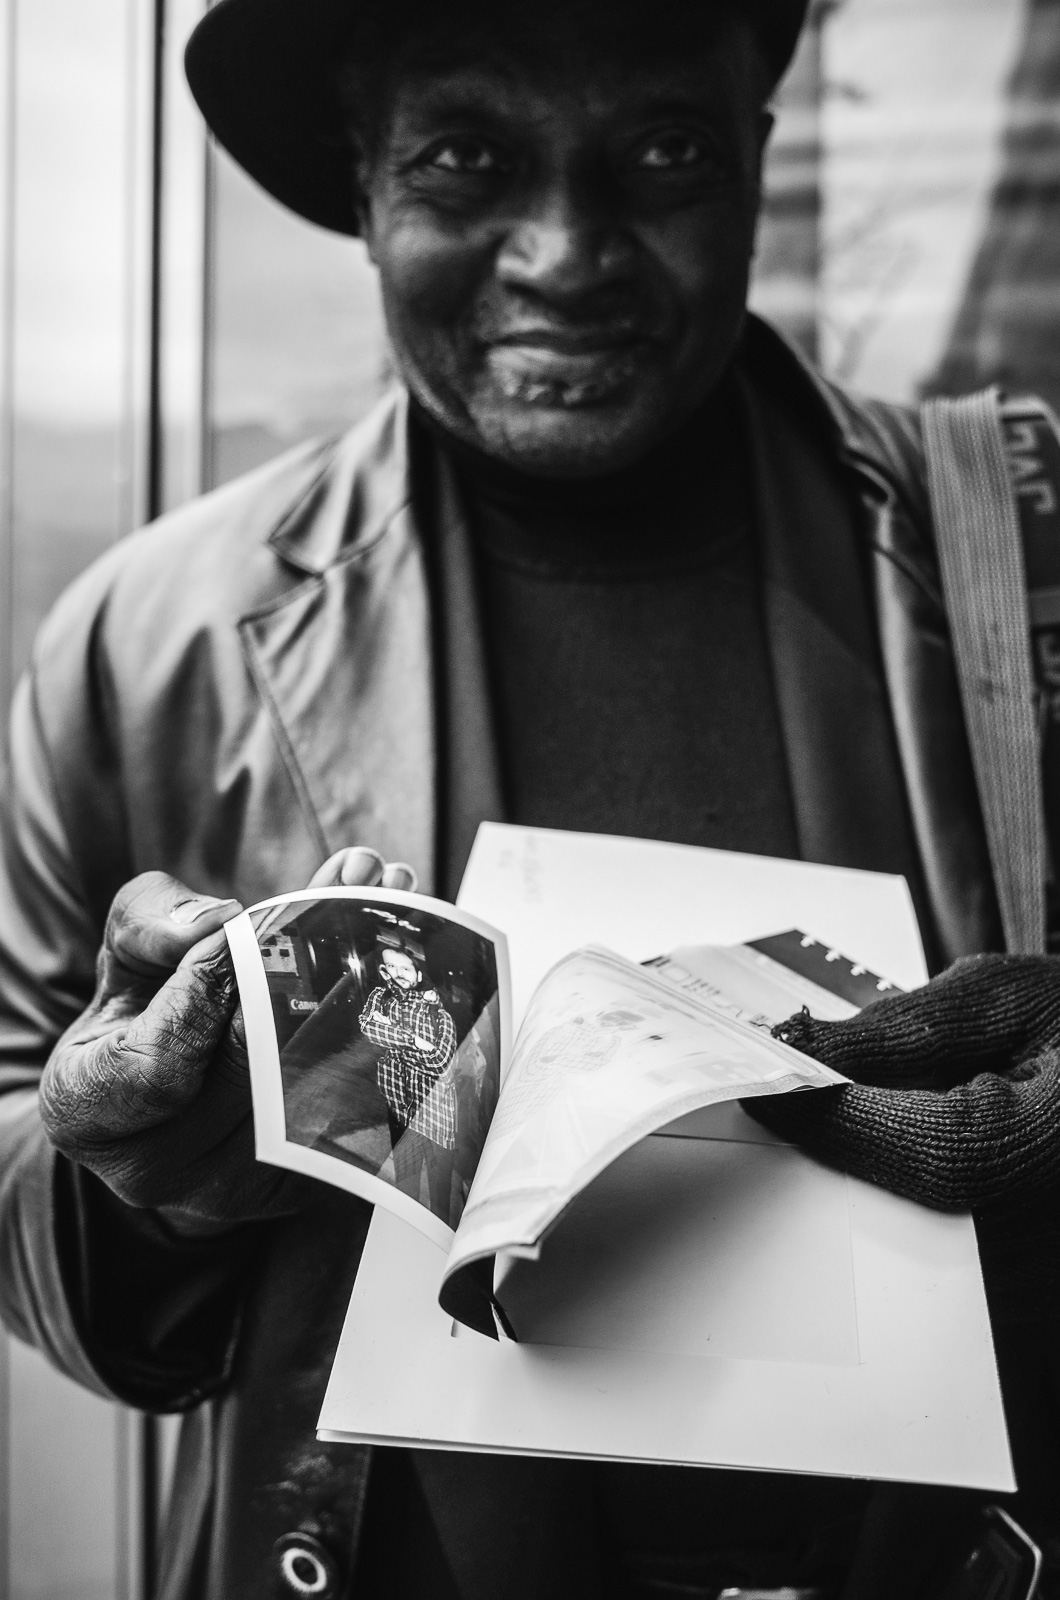 Louis Mendes Polaroid Photographer in New York City